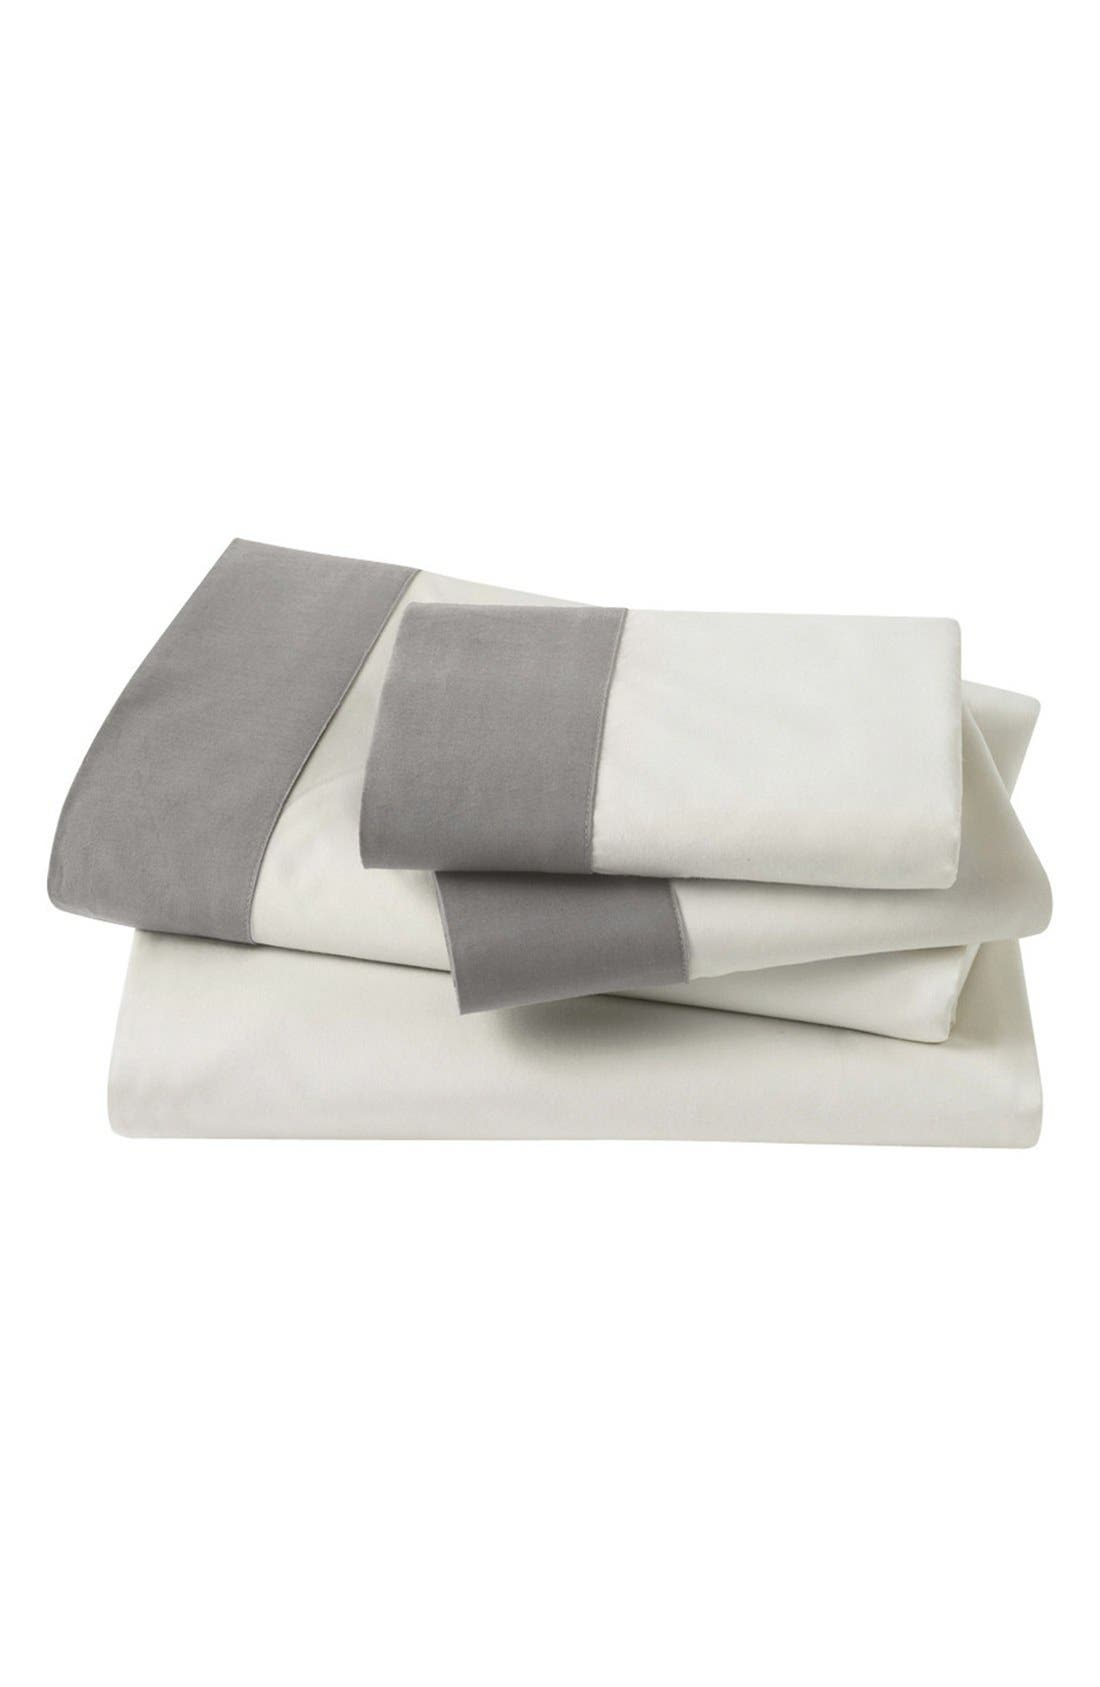 'Modern Border' 300 Thread Count Sheet Set,                         Main,                         color, White/ Grey